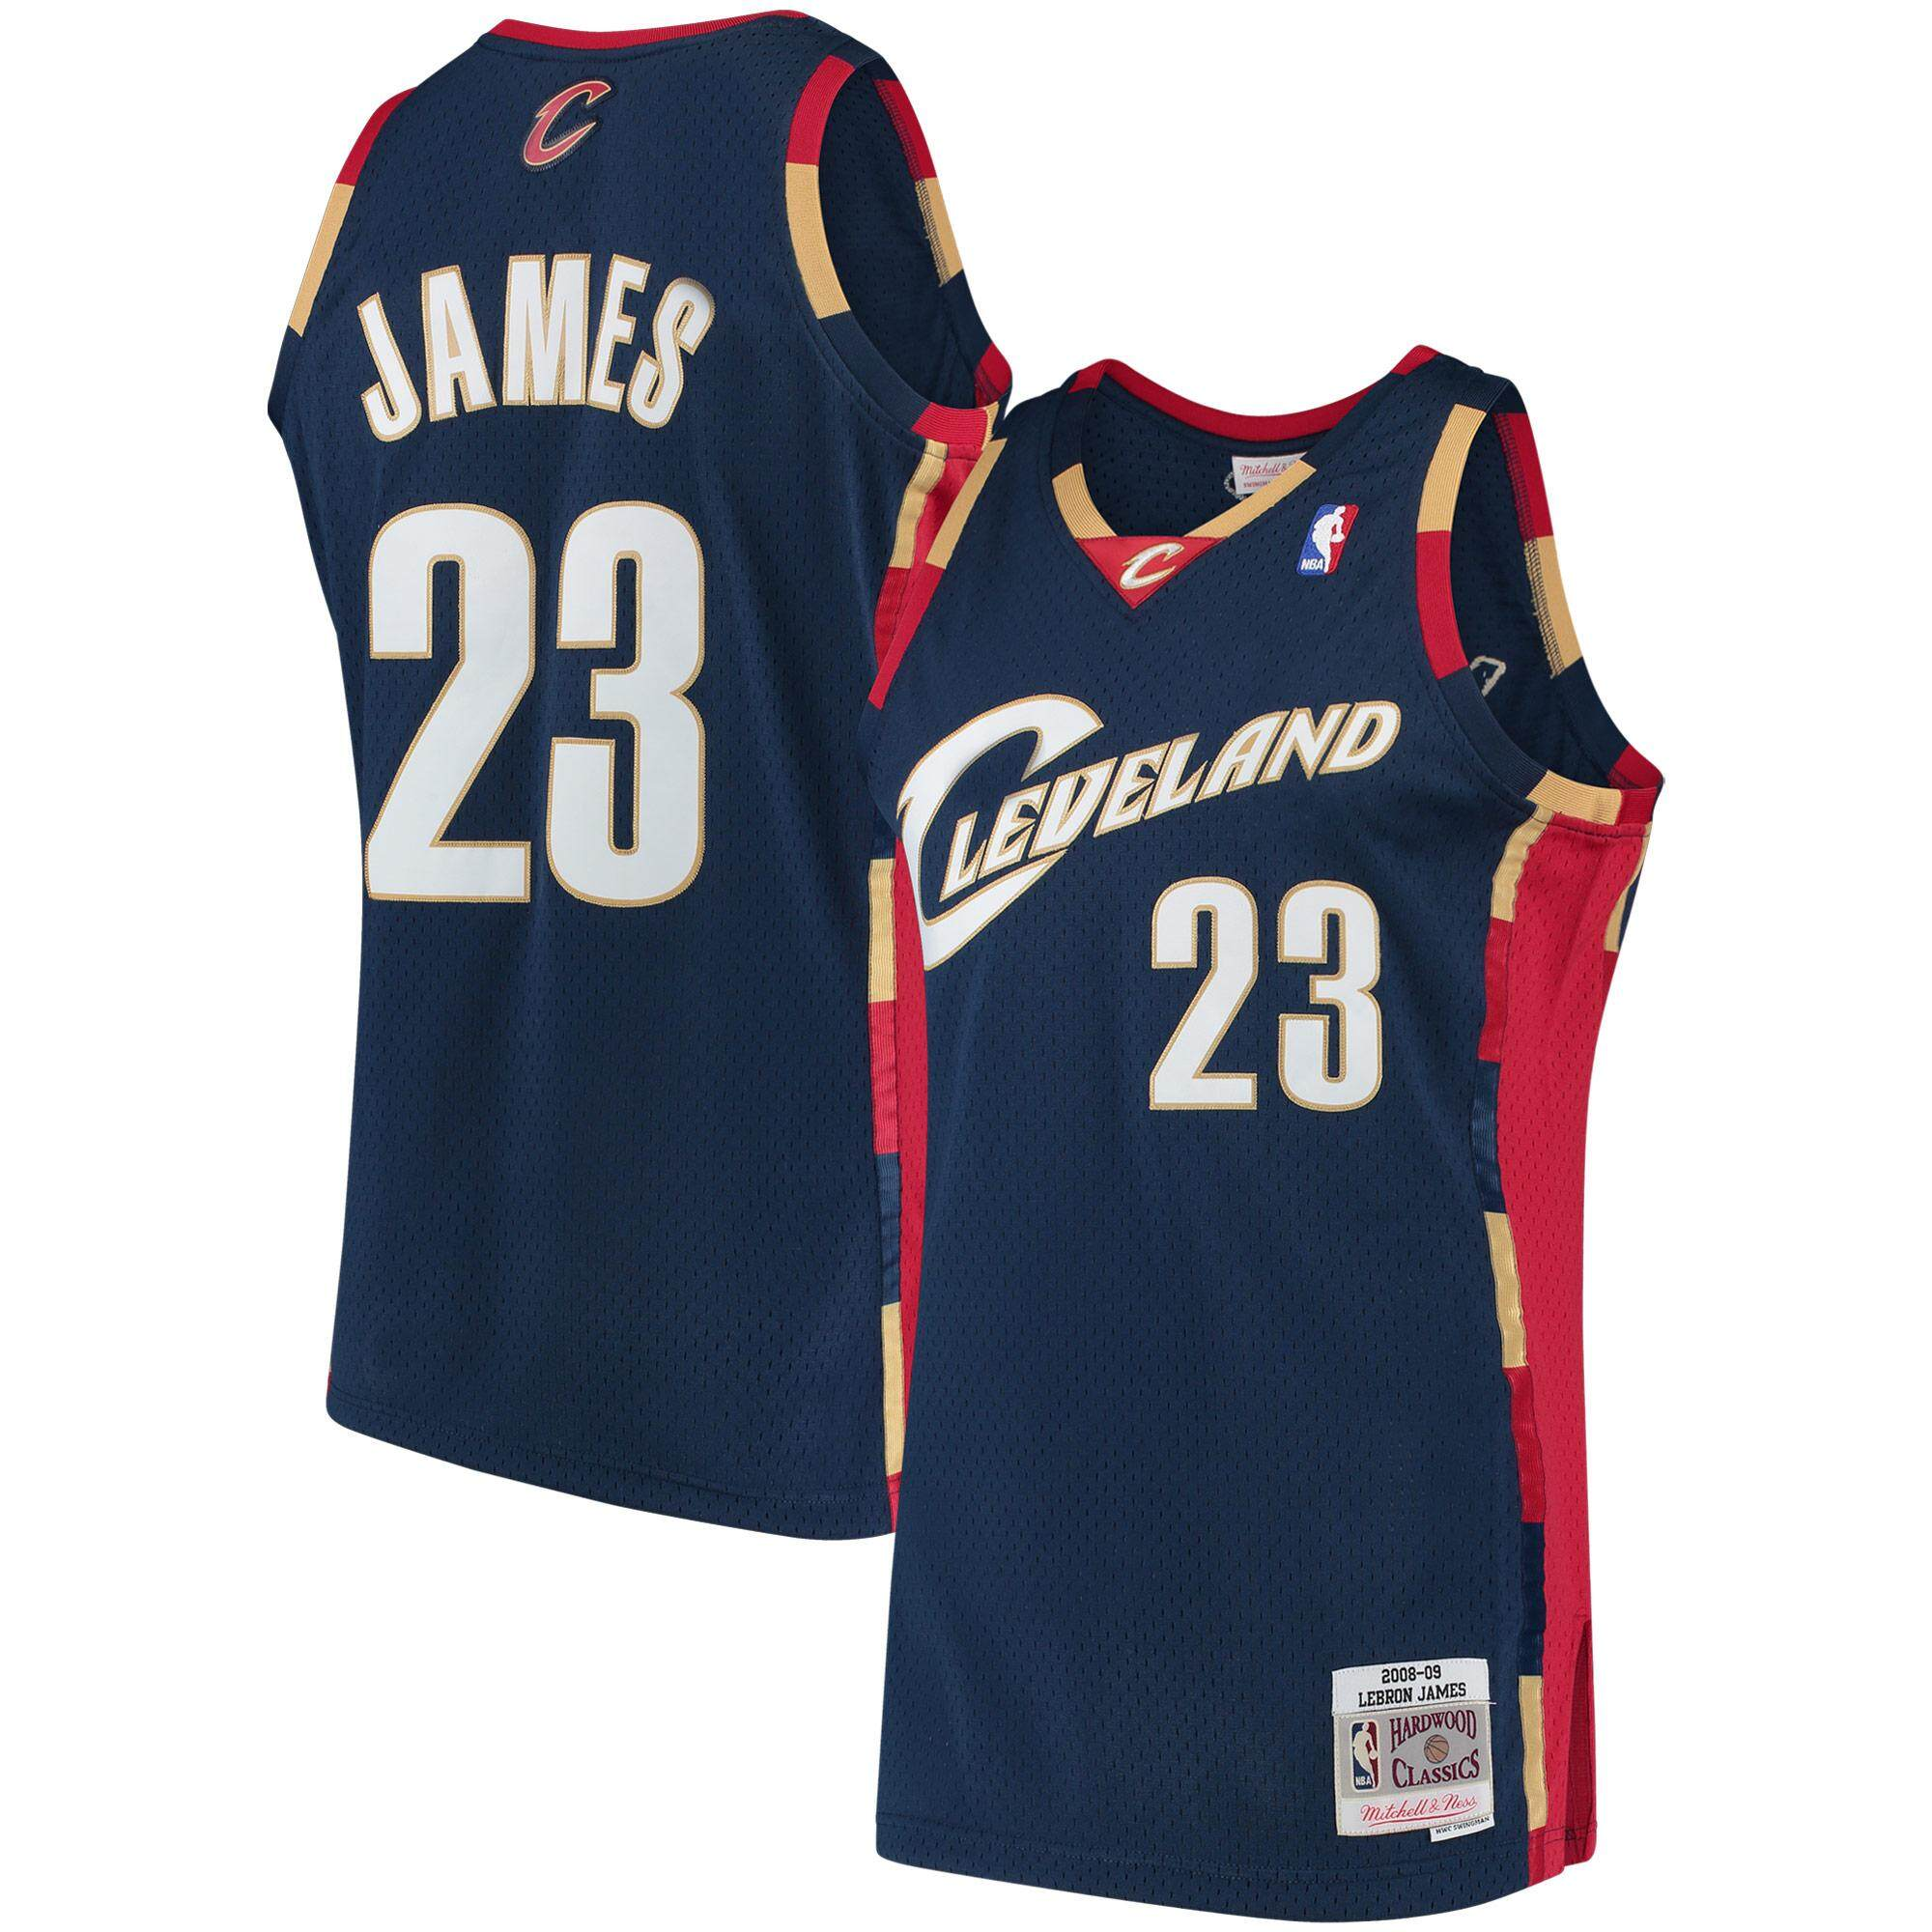 Top Light Mitchell Cavaliers 23 Male Jersey Hardwood amp; Lebron Ness Classics 2008-09 Adult For James Cleveland Num Basketball Clothes Swingman